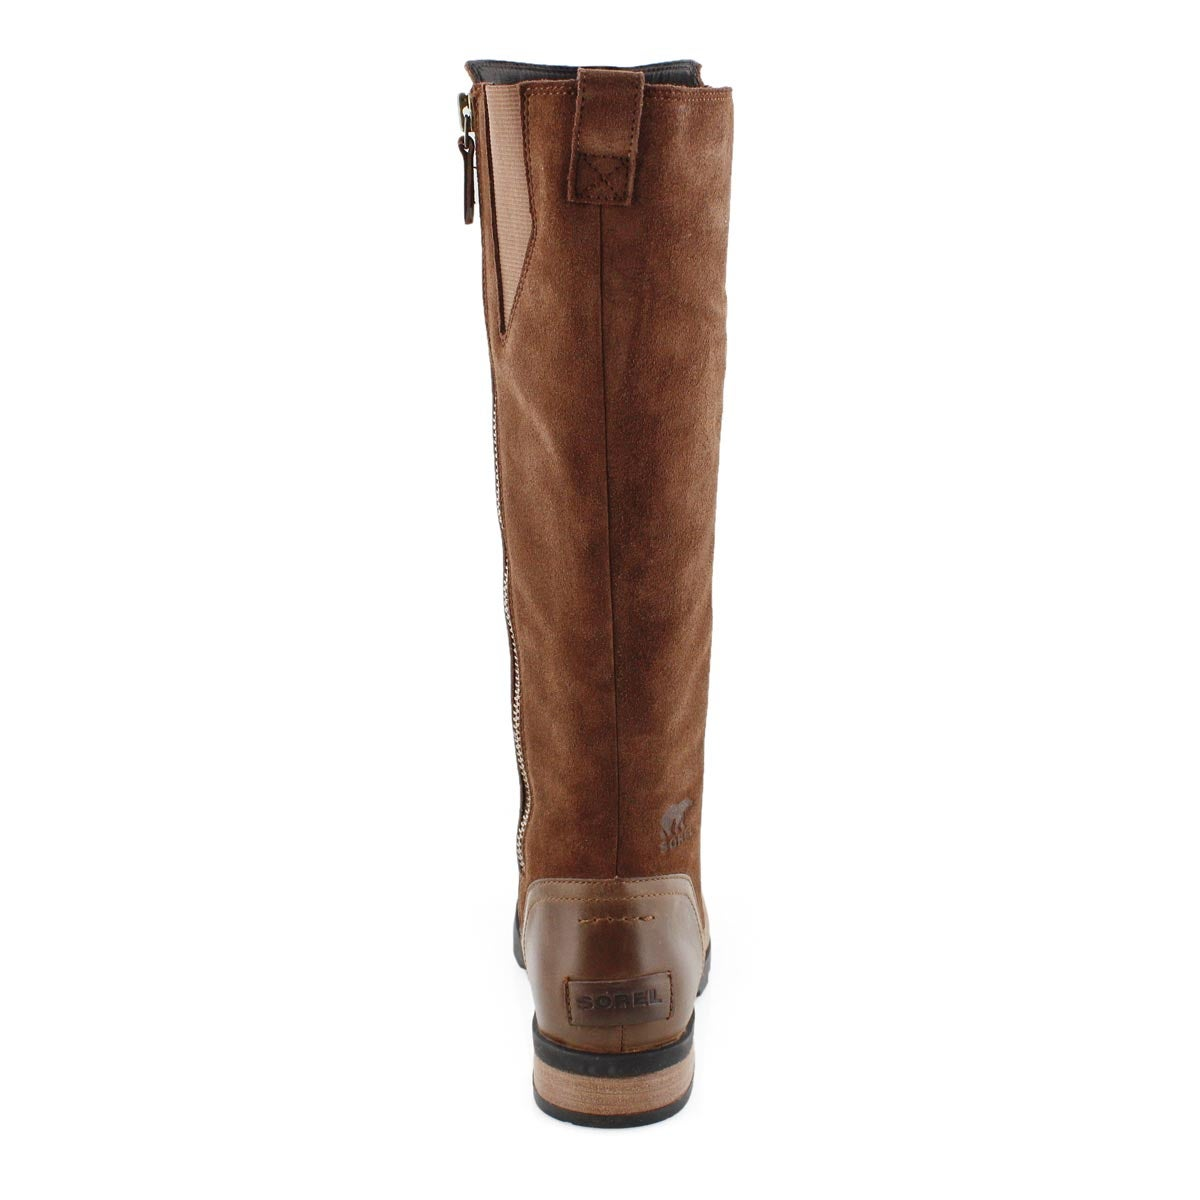 Lds Emelie Tall tobacco wtpf boot